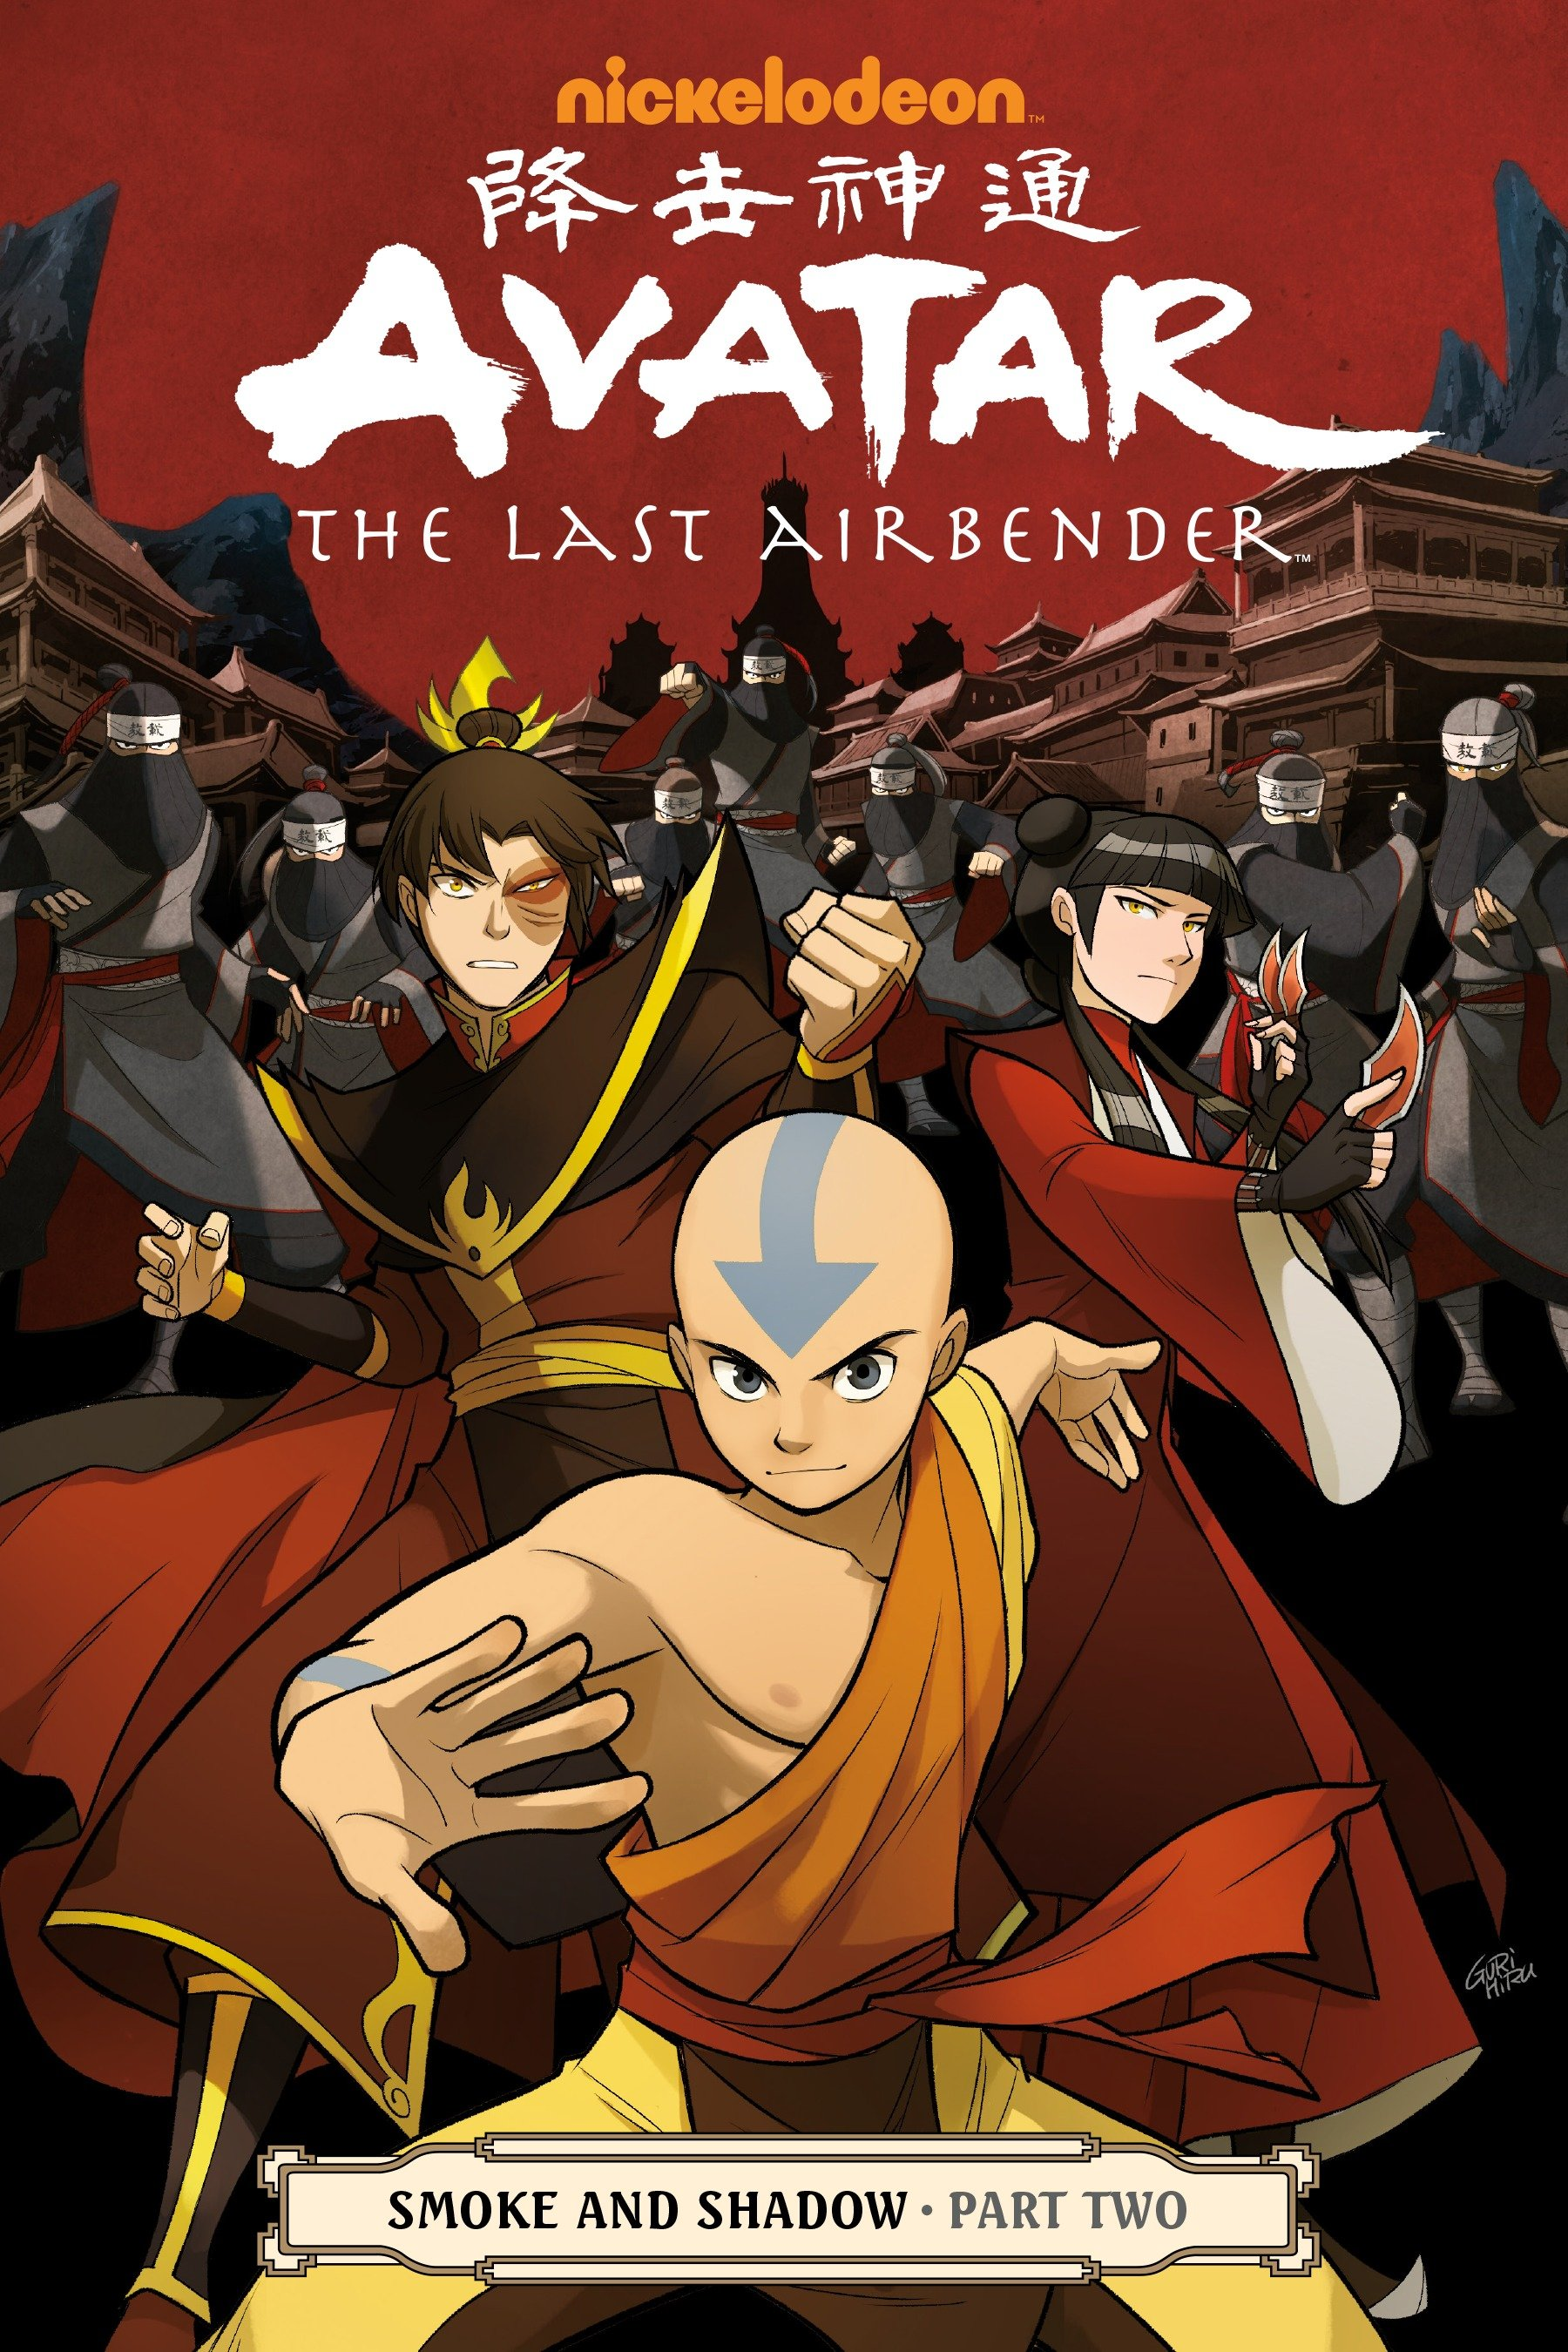 Avatar: The Last Airbender - Smoke and Shadow Part 2 [electronic resource]